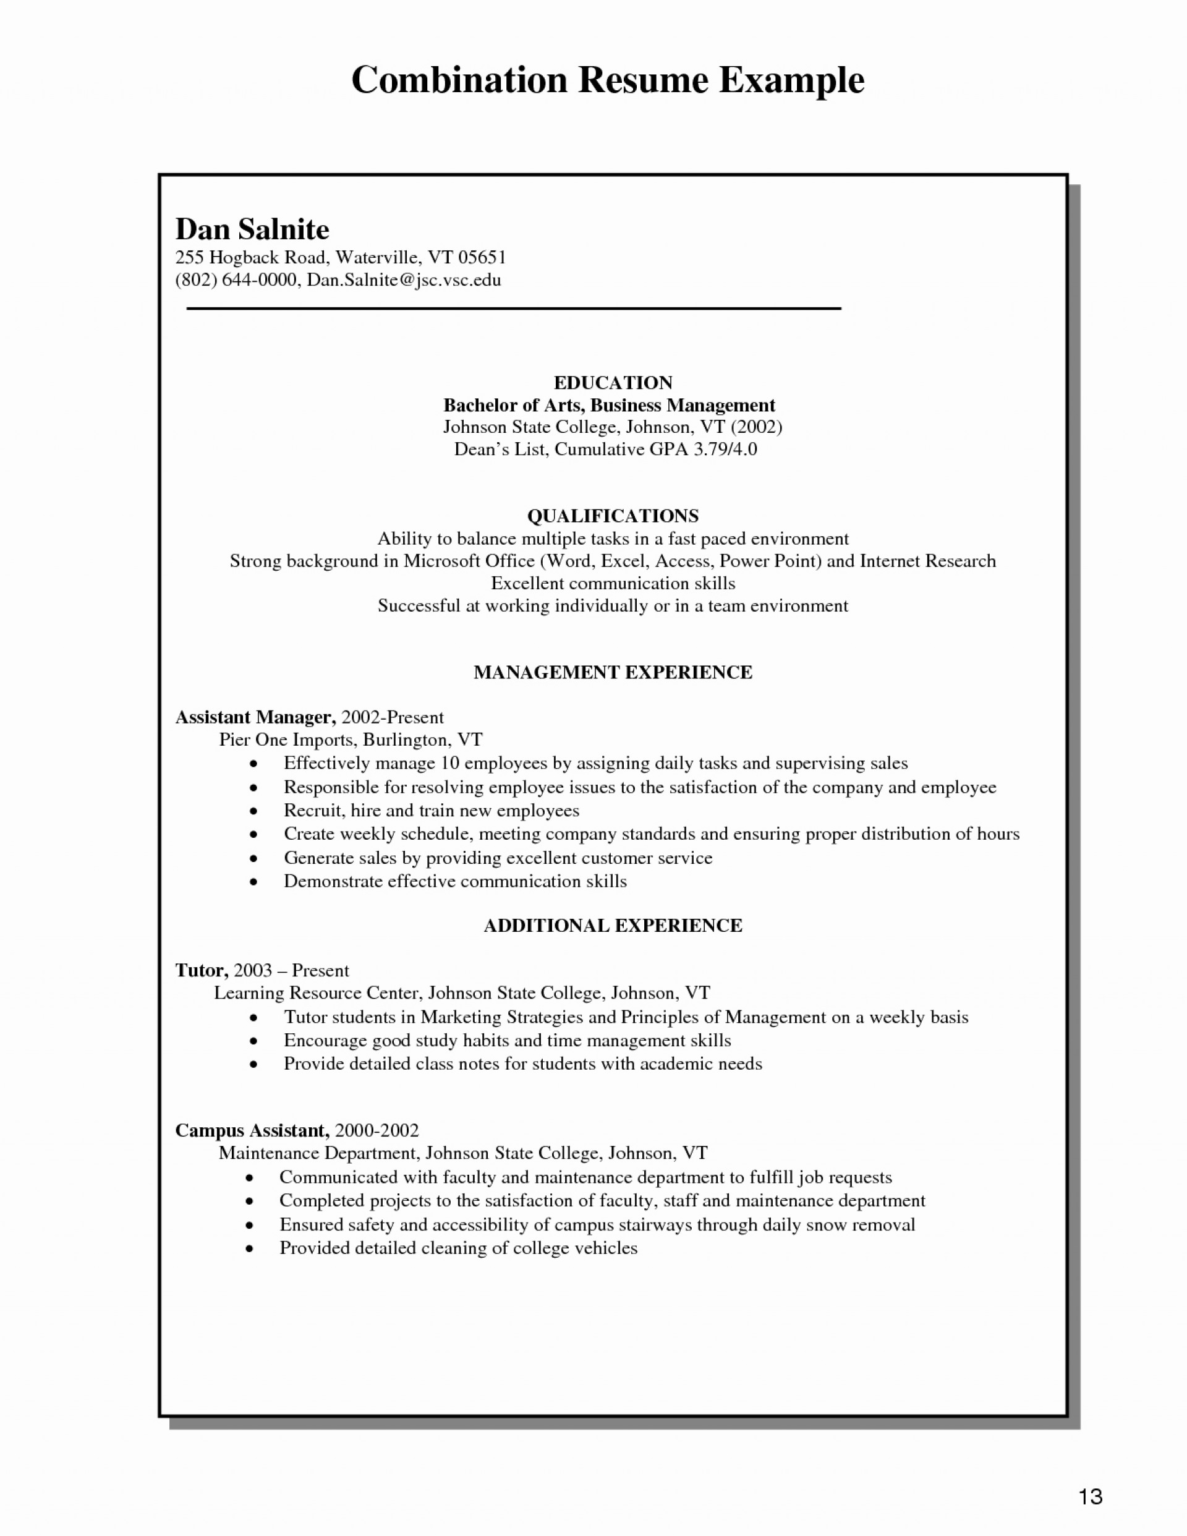 029 Combination Resume Template Word Free Templates 27 1